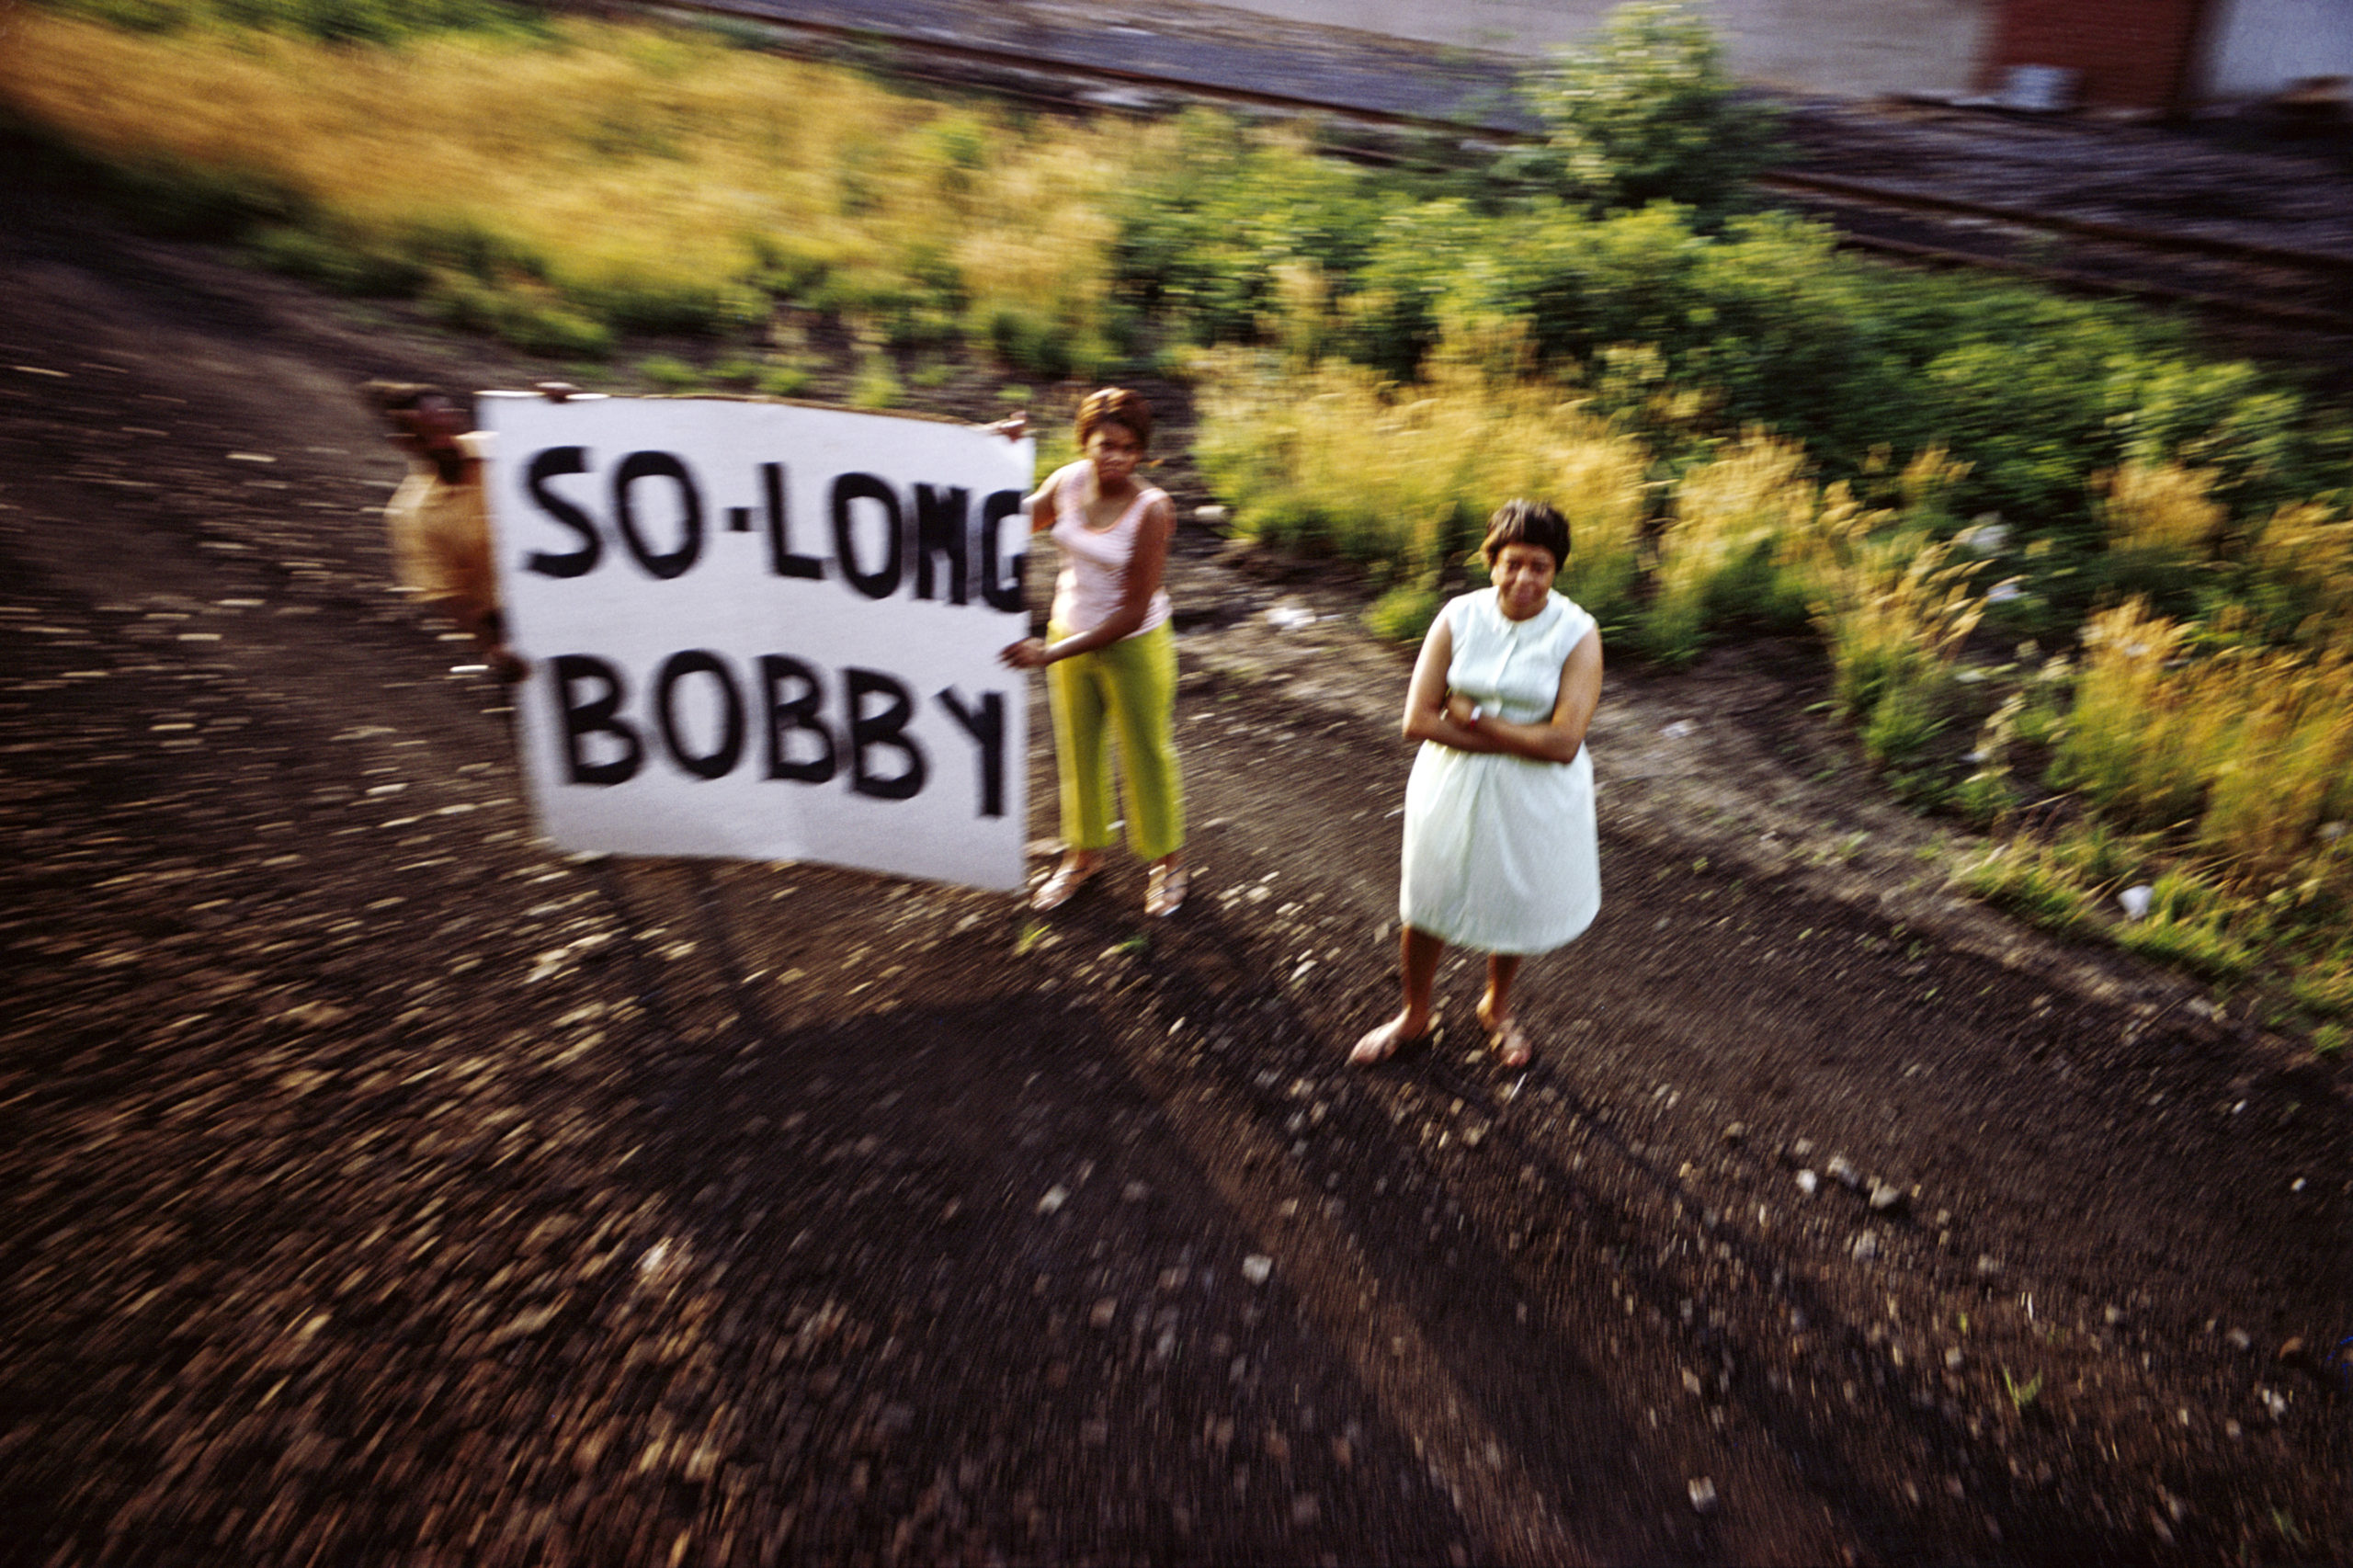 Sans titre, série RFK Funeral Train, 1968 © Paul Fusco/Magnum Photos, Avec l'aimable autorisation de la Danziger Gallery.